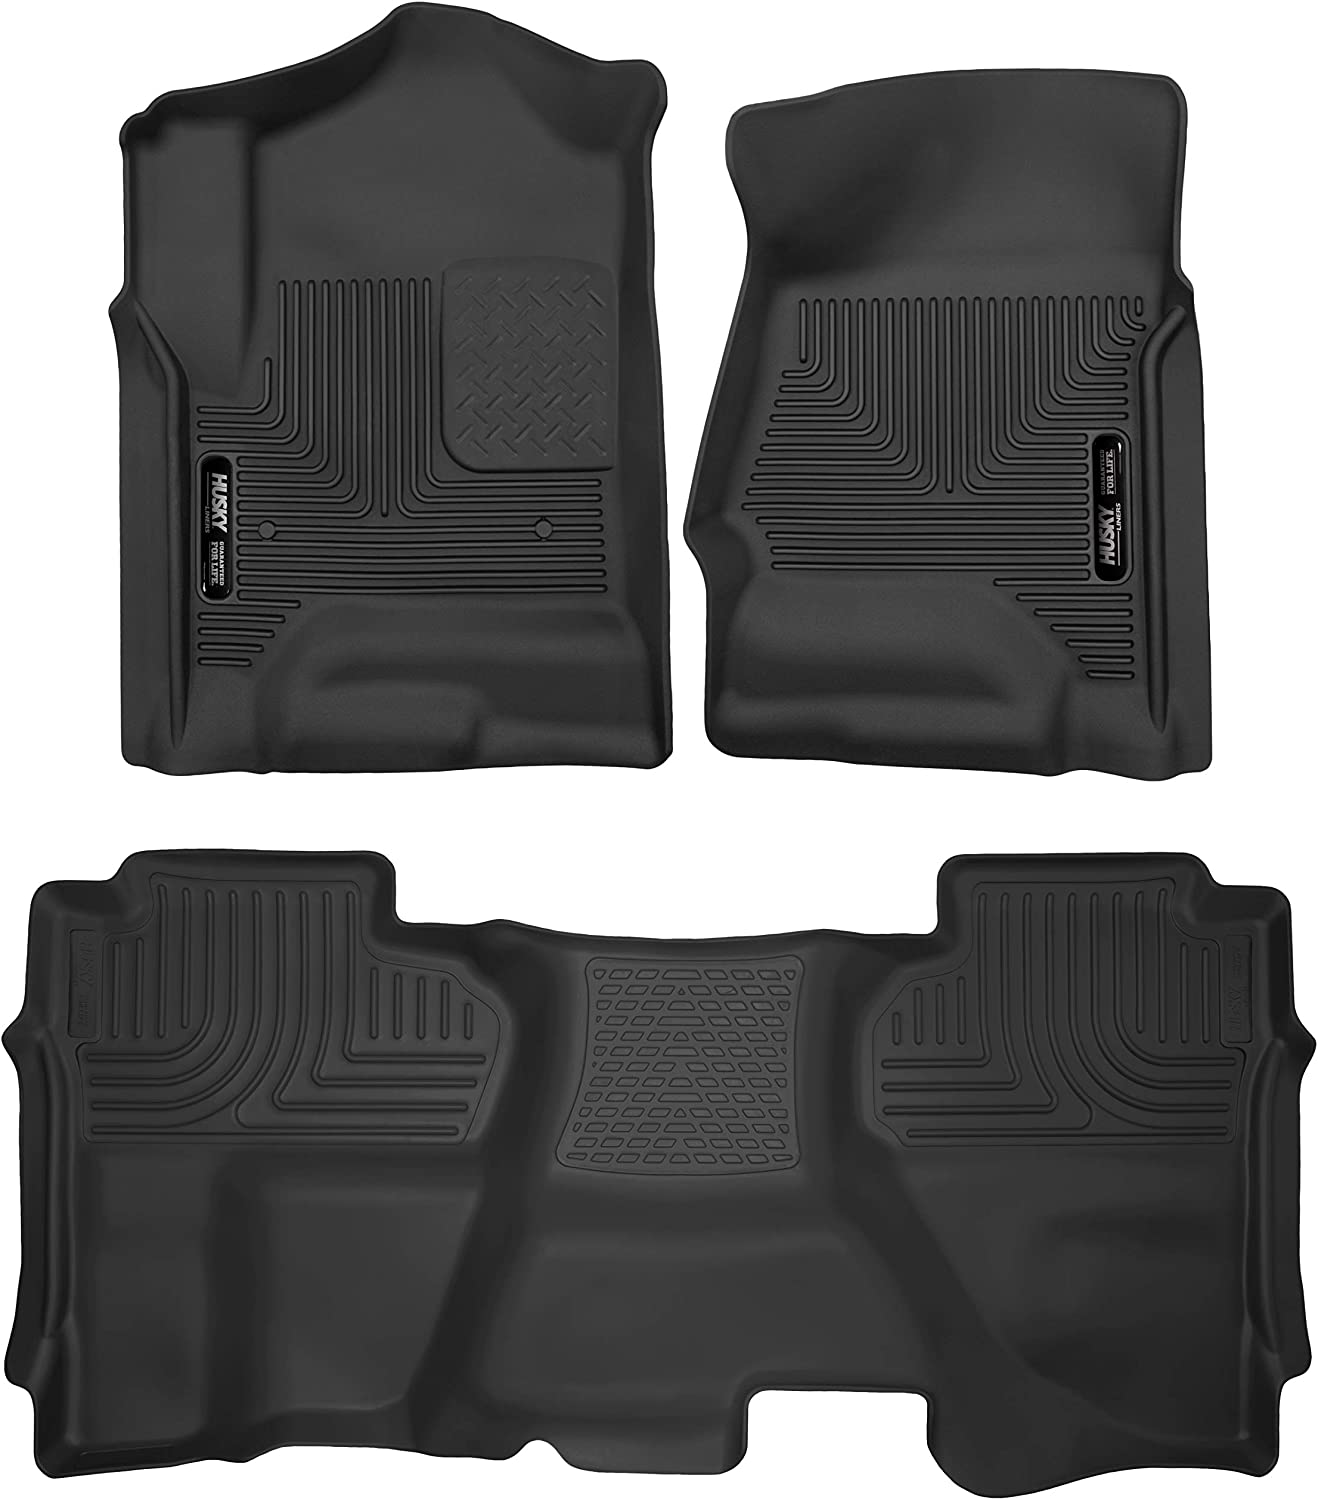 2019 Chevrolet//GMC Silverado LD//Sierra Limited 1500 Double Cab X-act Contour Front Floor Liners Husky Liners Fits 2014-18 Chevrolet//GMC Silverado//Sierra 1500 Double Cab 53918